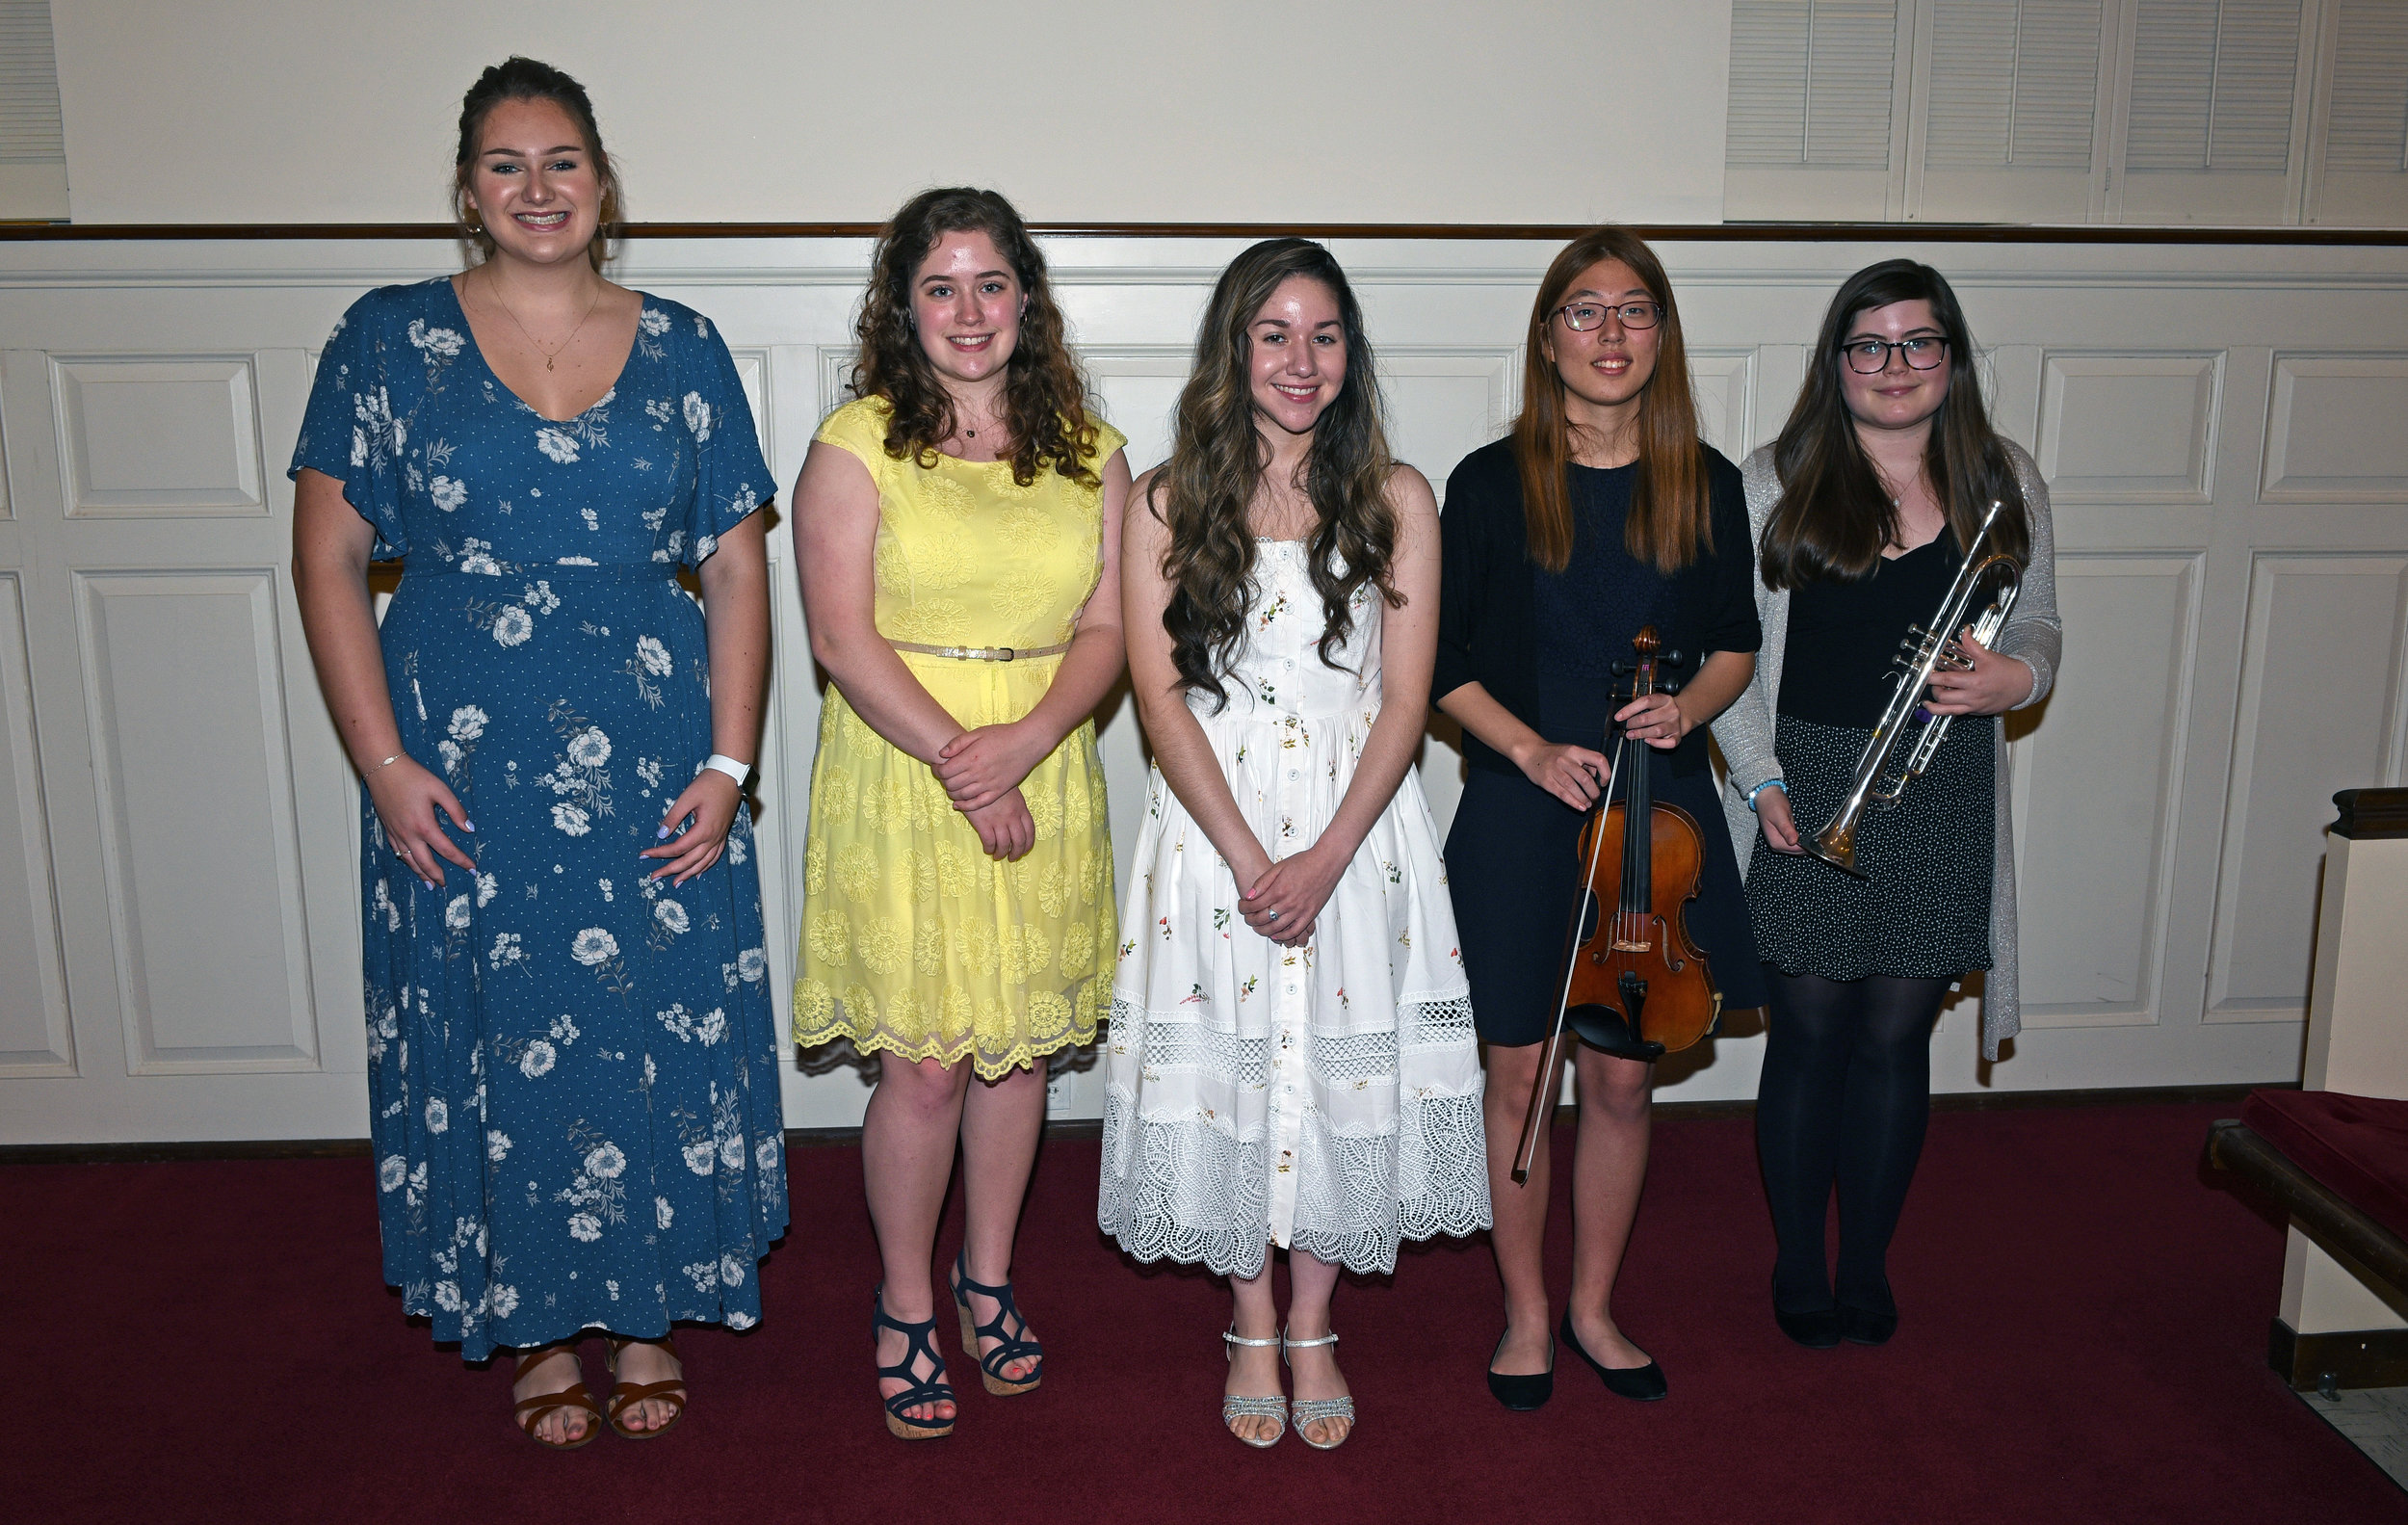 From left to right:  Molly Barclay, voice; Lynnae Eades, piano; Dominique Odens, voice; Christy Song, violin; Molly Ragon, trumpet.